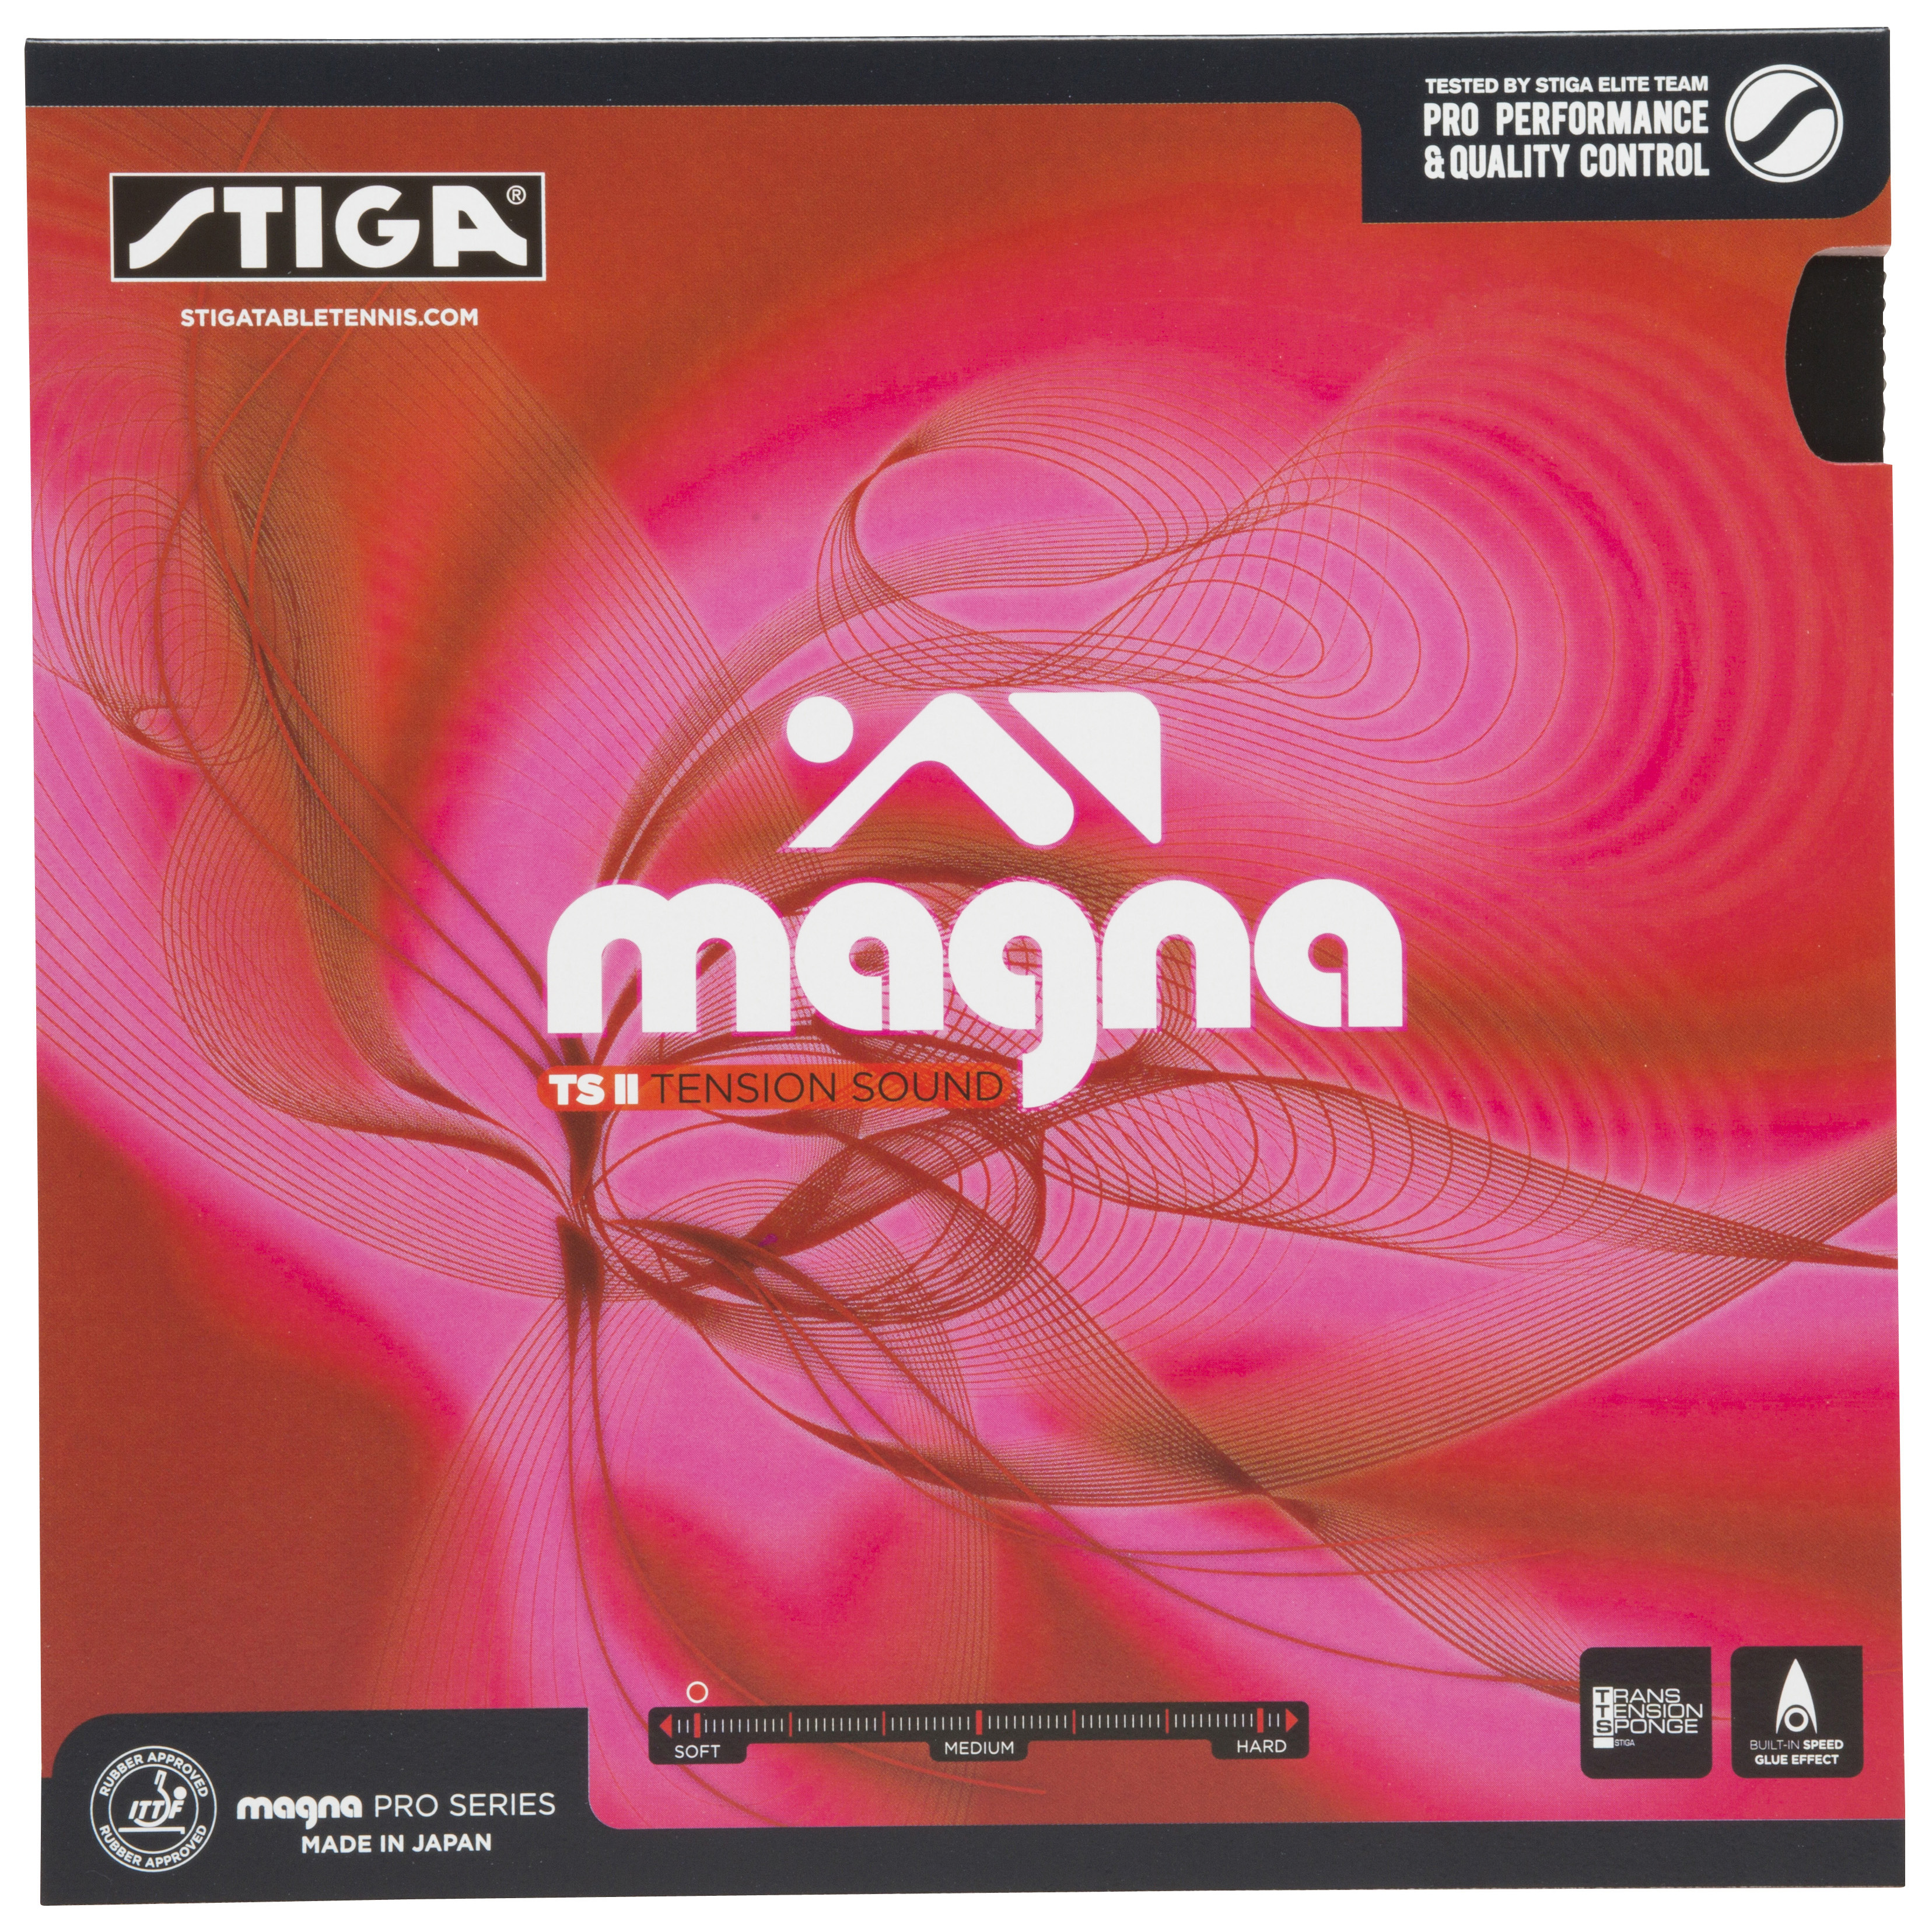 Magna TS II Table tennis rubber